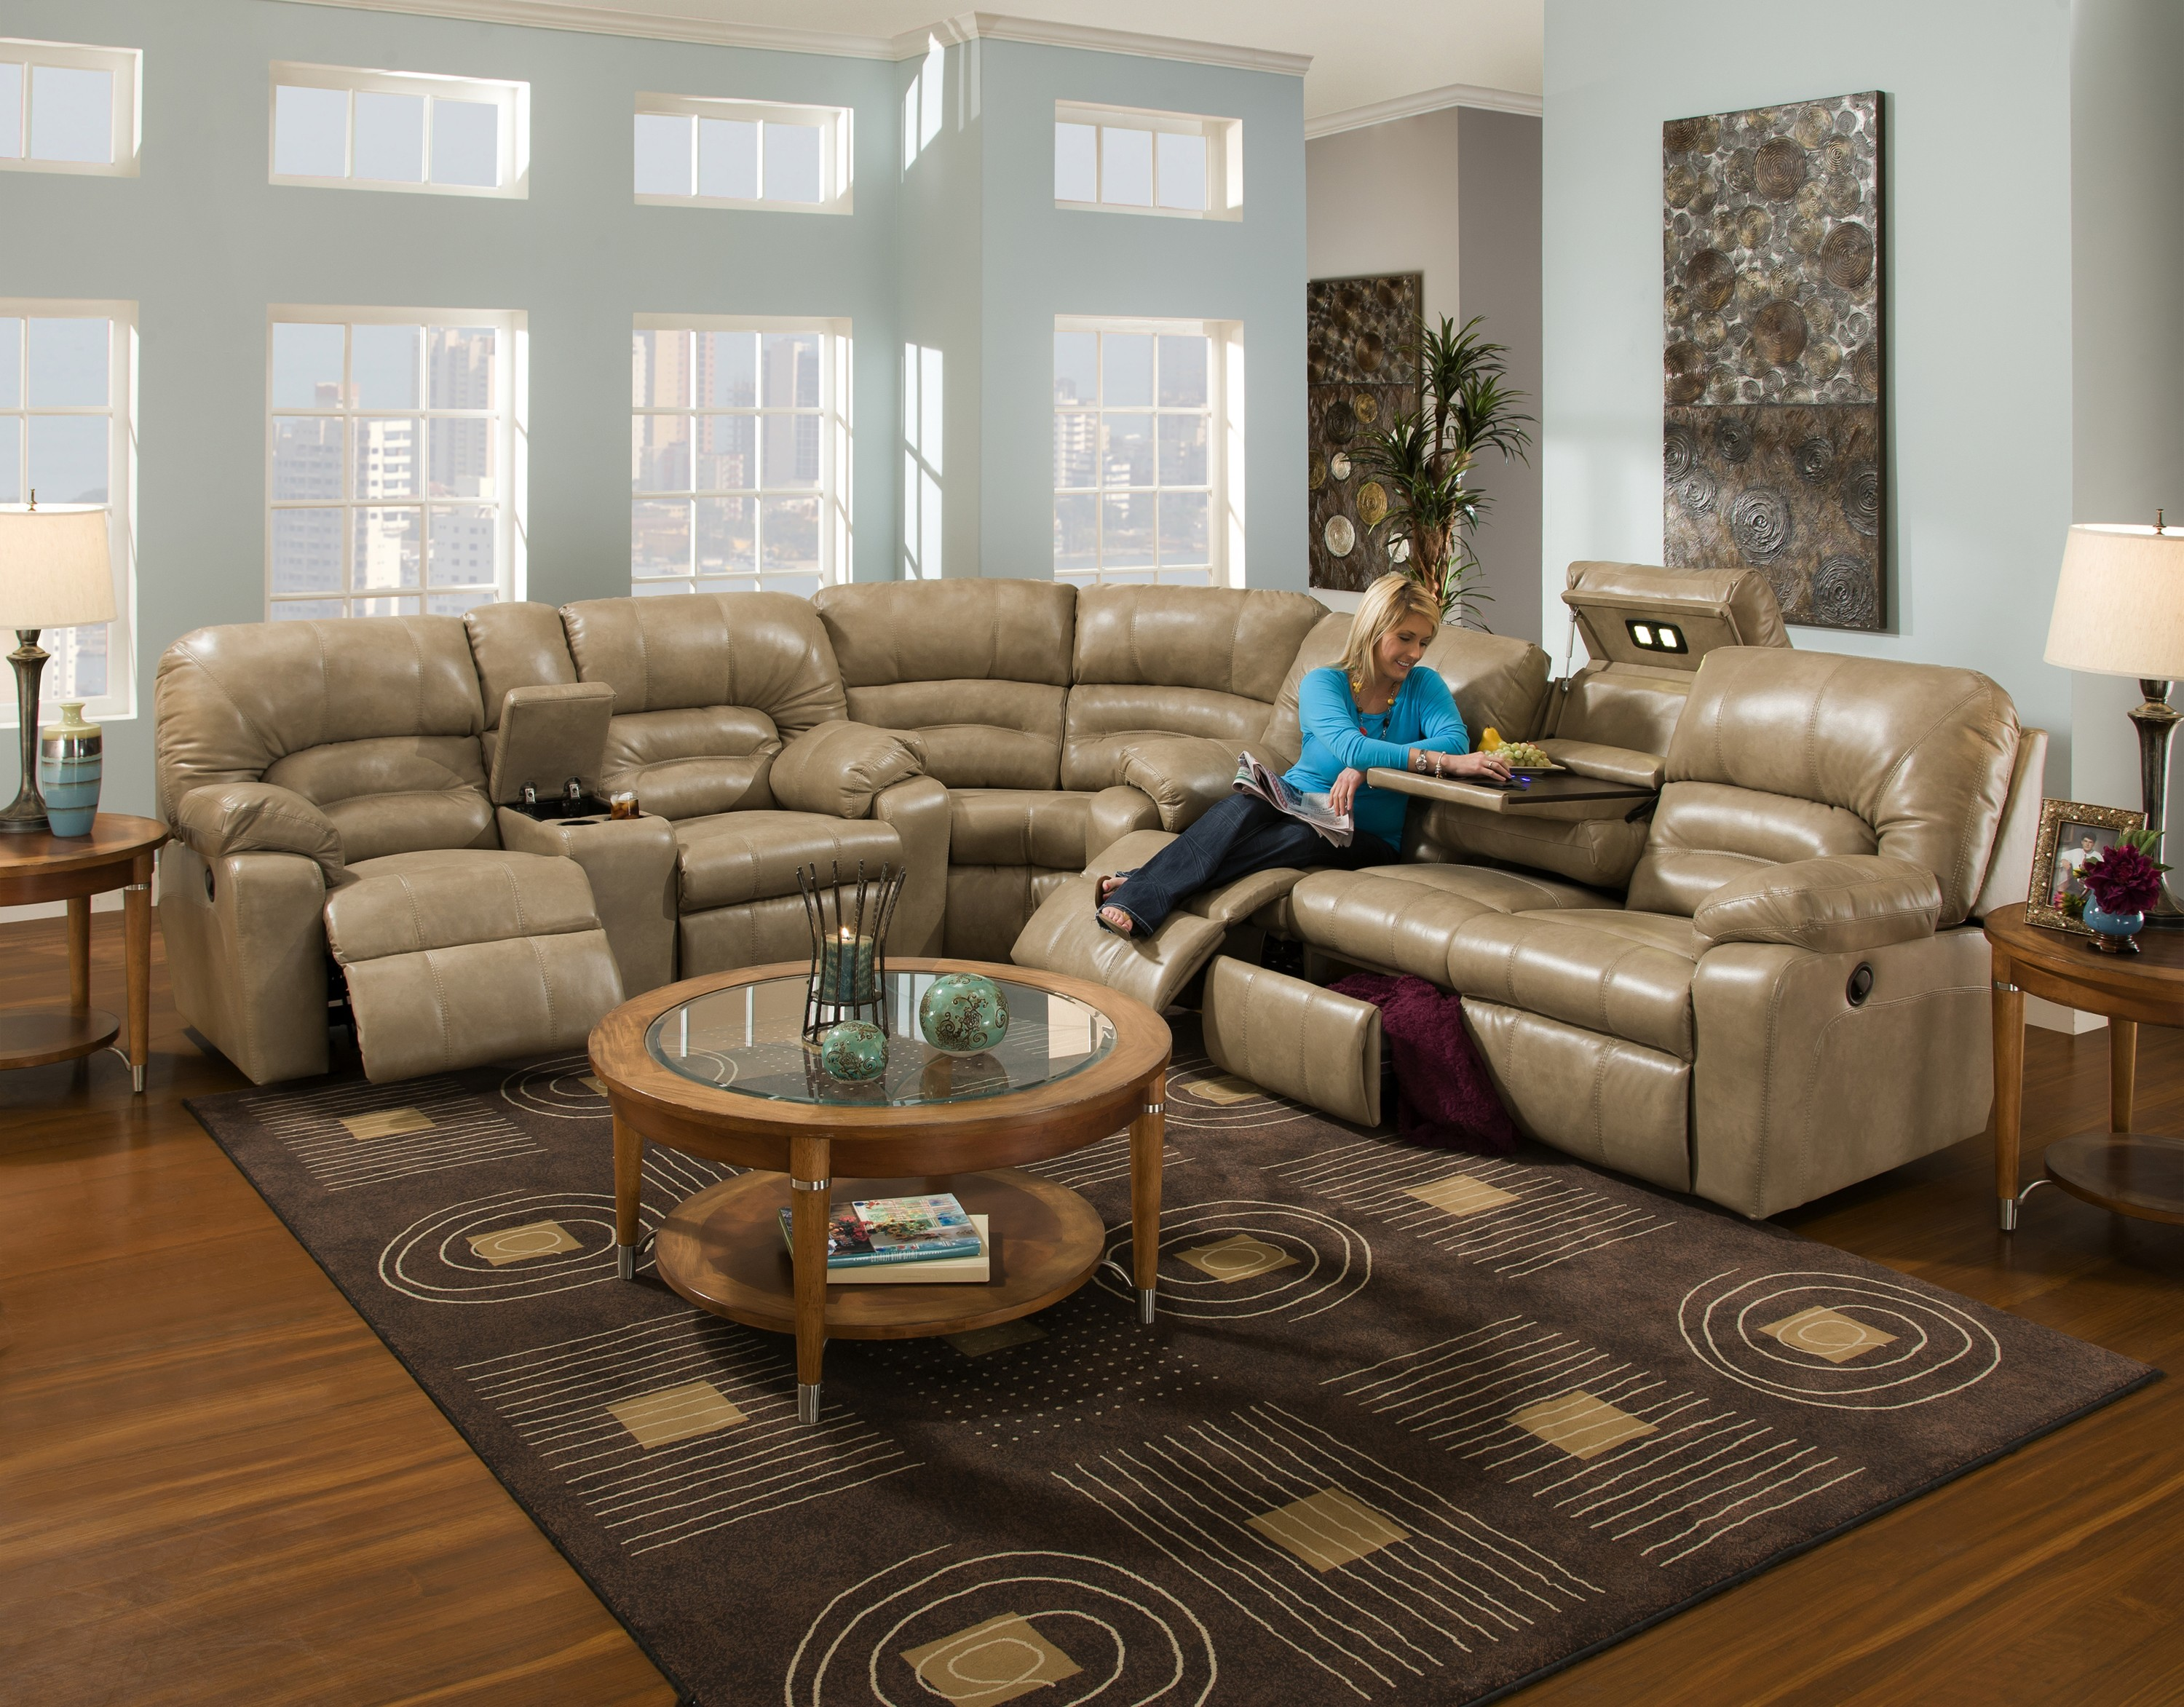 living room suites cheap. leather cheap sectional sofas in cream on wooden floor plus carpet and  round table for living Furniture Charming Cheap Sectional Sofas In Brown Plus